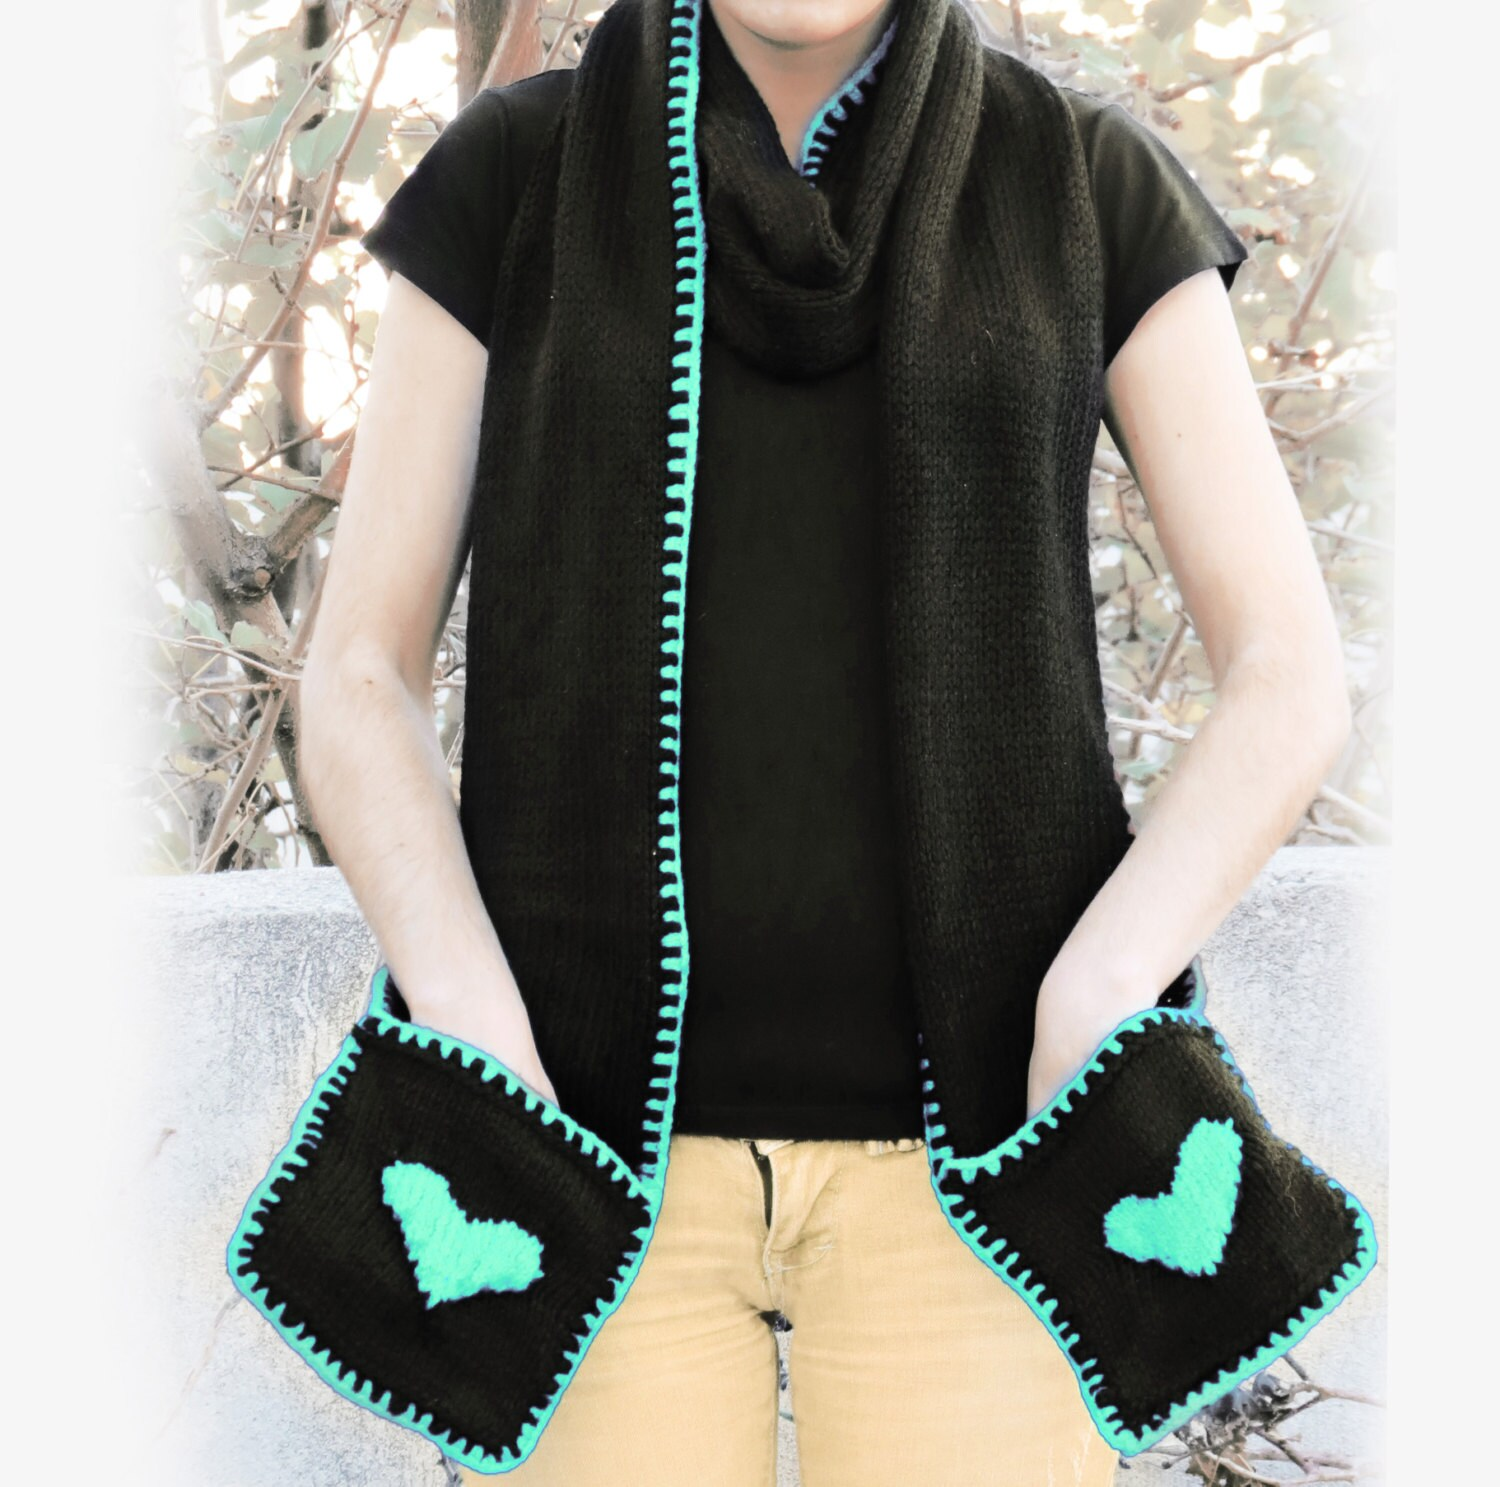 Knitting Pattern For A Scarf With Pockets : Items similar to Knitted Yellow Heart Scarf with Pockets - SCARVES - Heart Ac...